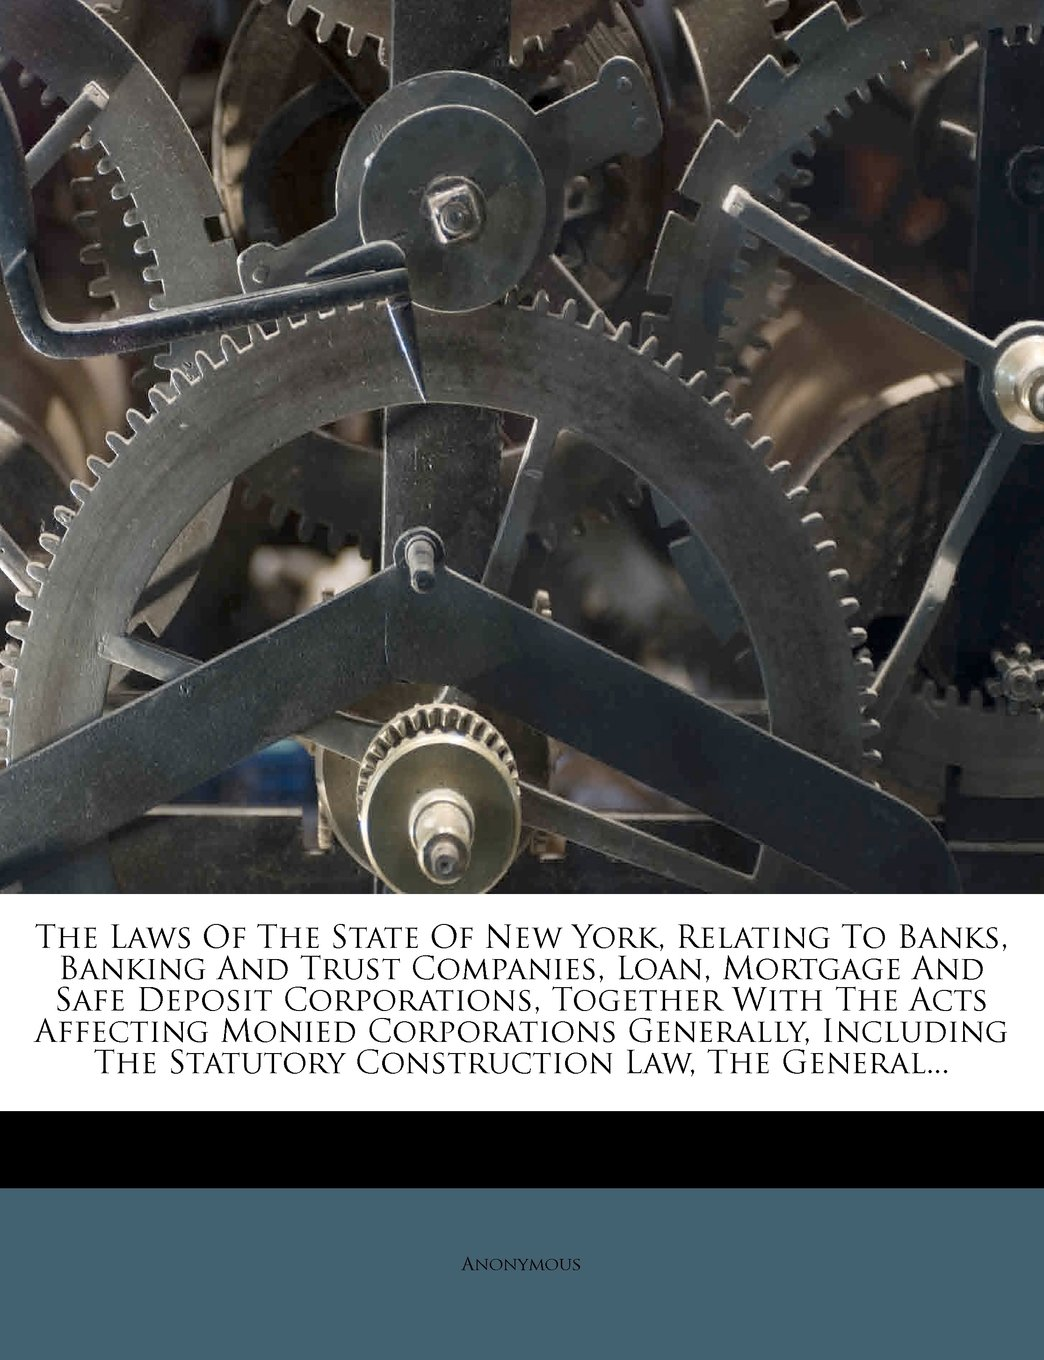 Read Online The Laws Of The State Of New York, Relating To Banks, Banking And Trust Companies, Loan, Mortgage And Safe Deposit Corporations, Together With The ... Statutory Construction Law, The General... pdf epub